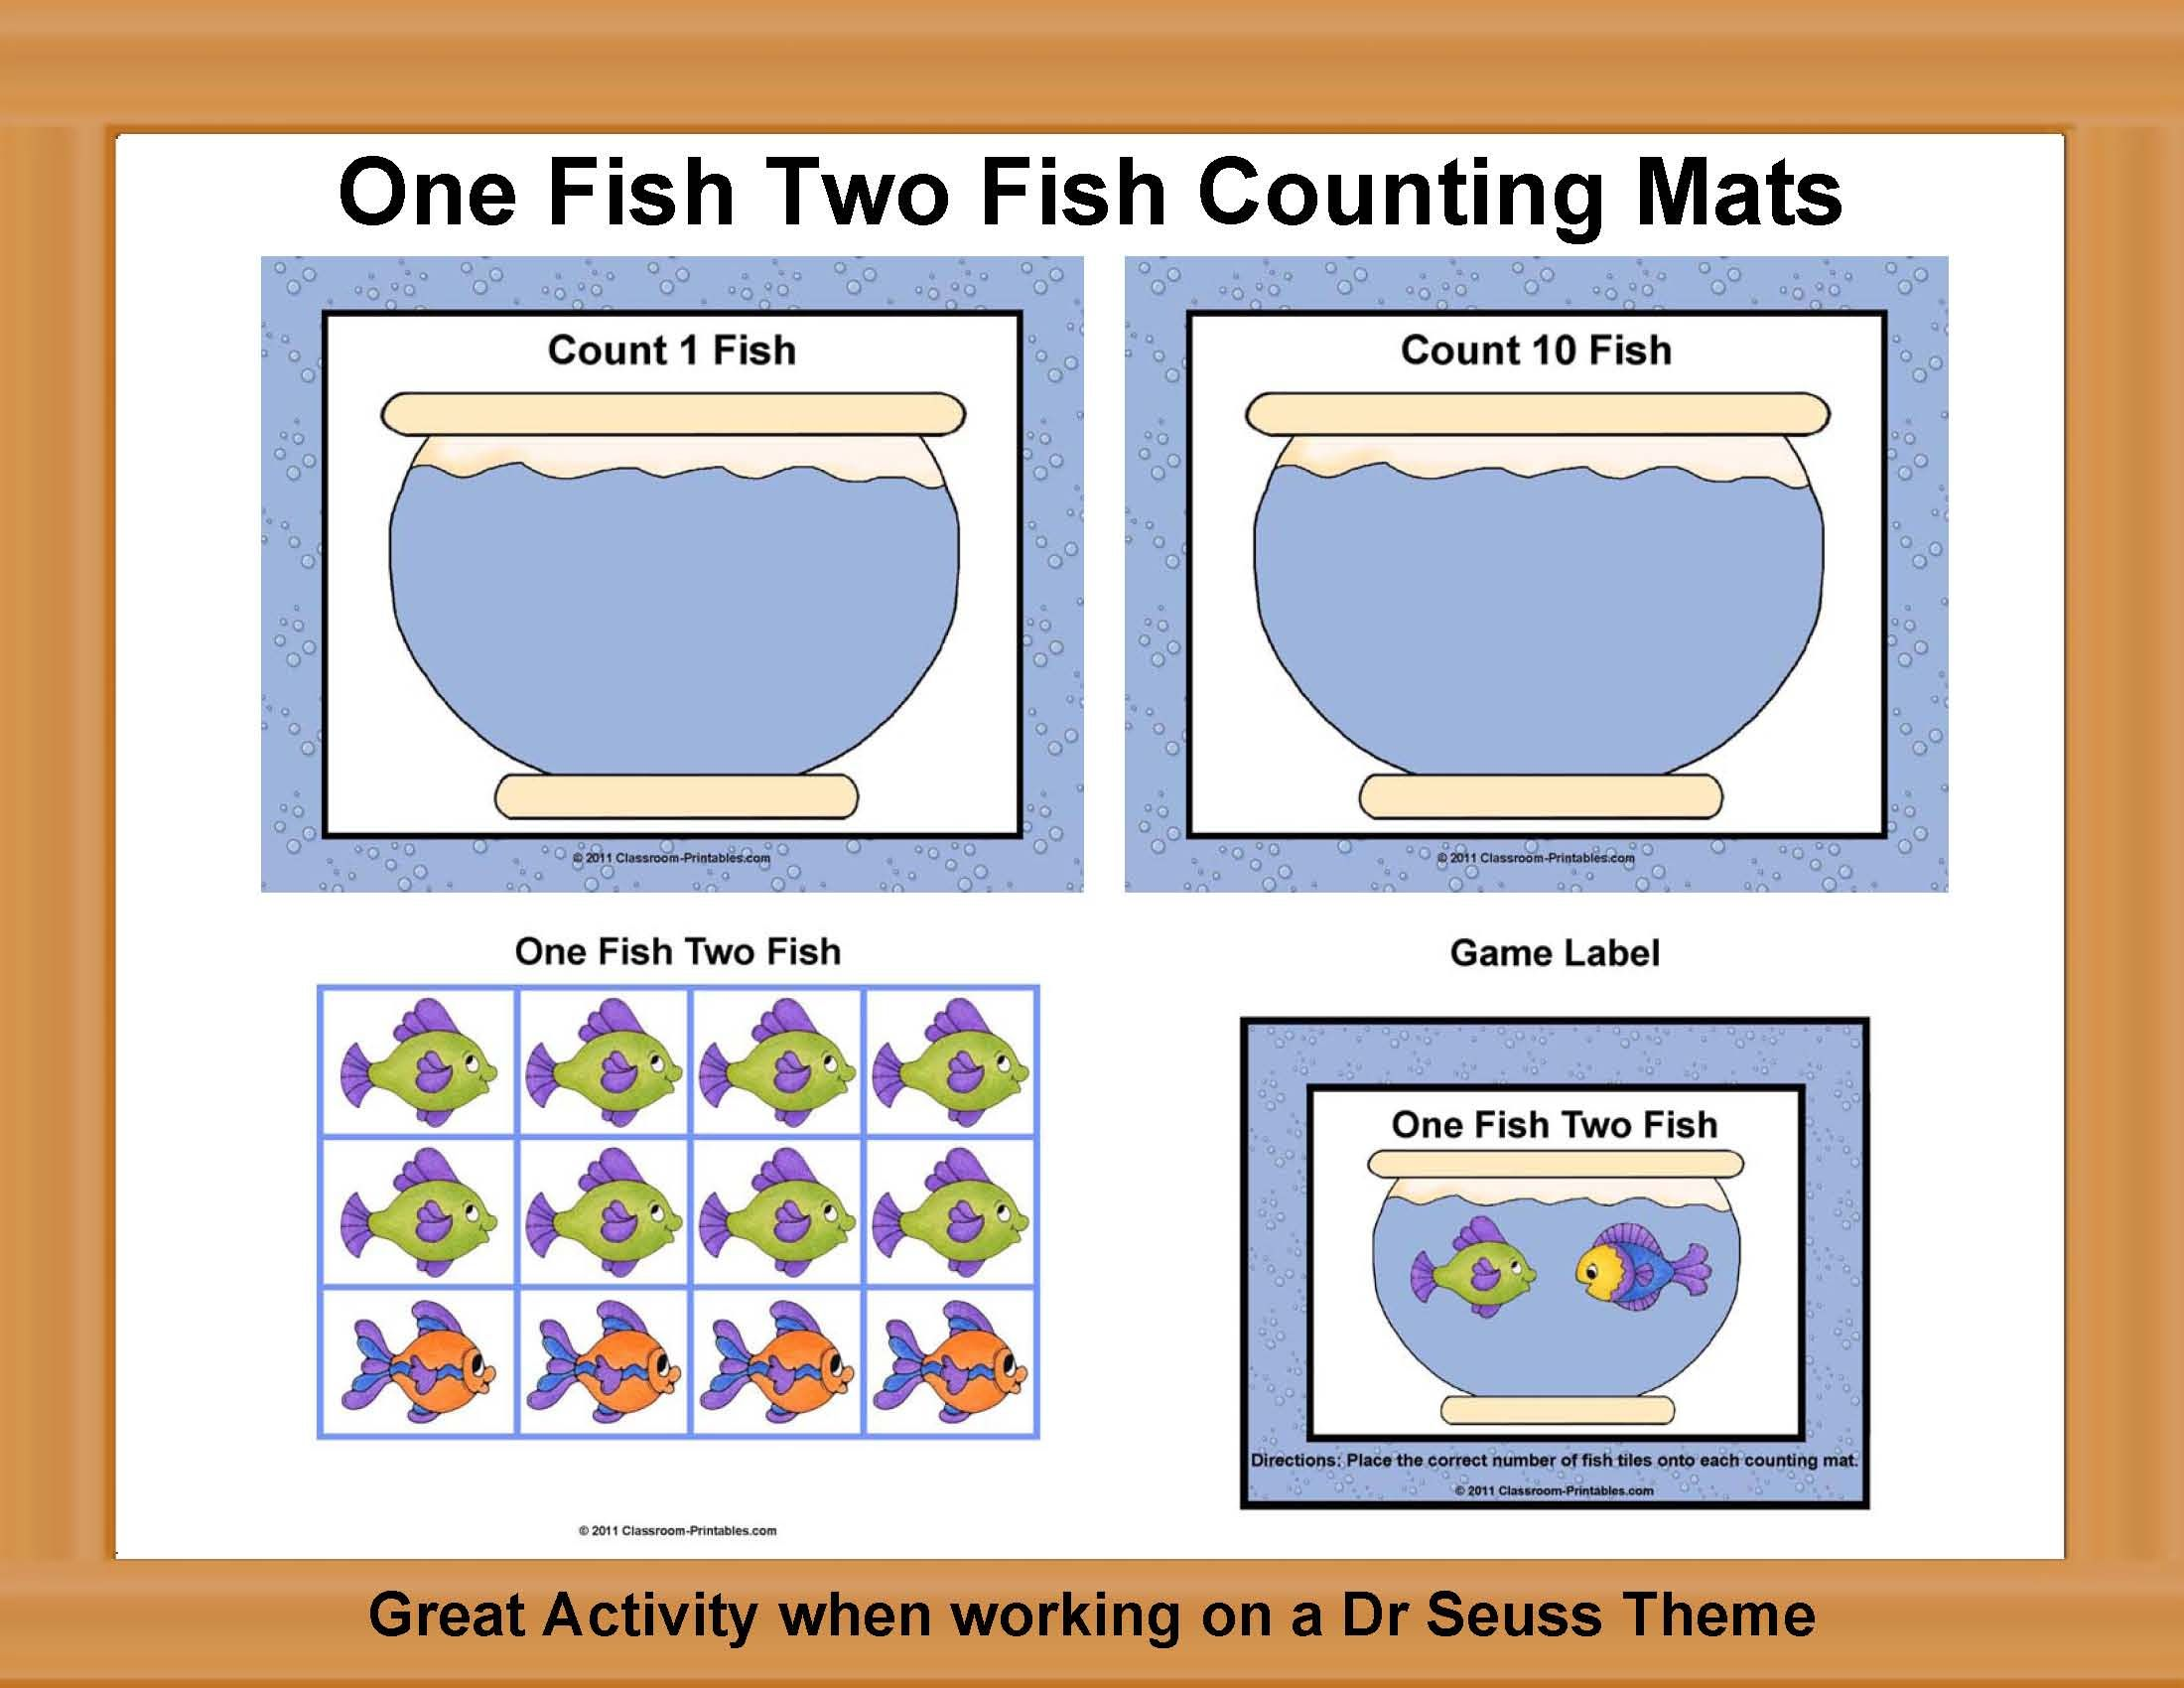 One Fish Two Fish Counting Mats